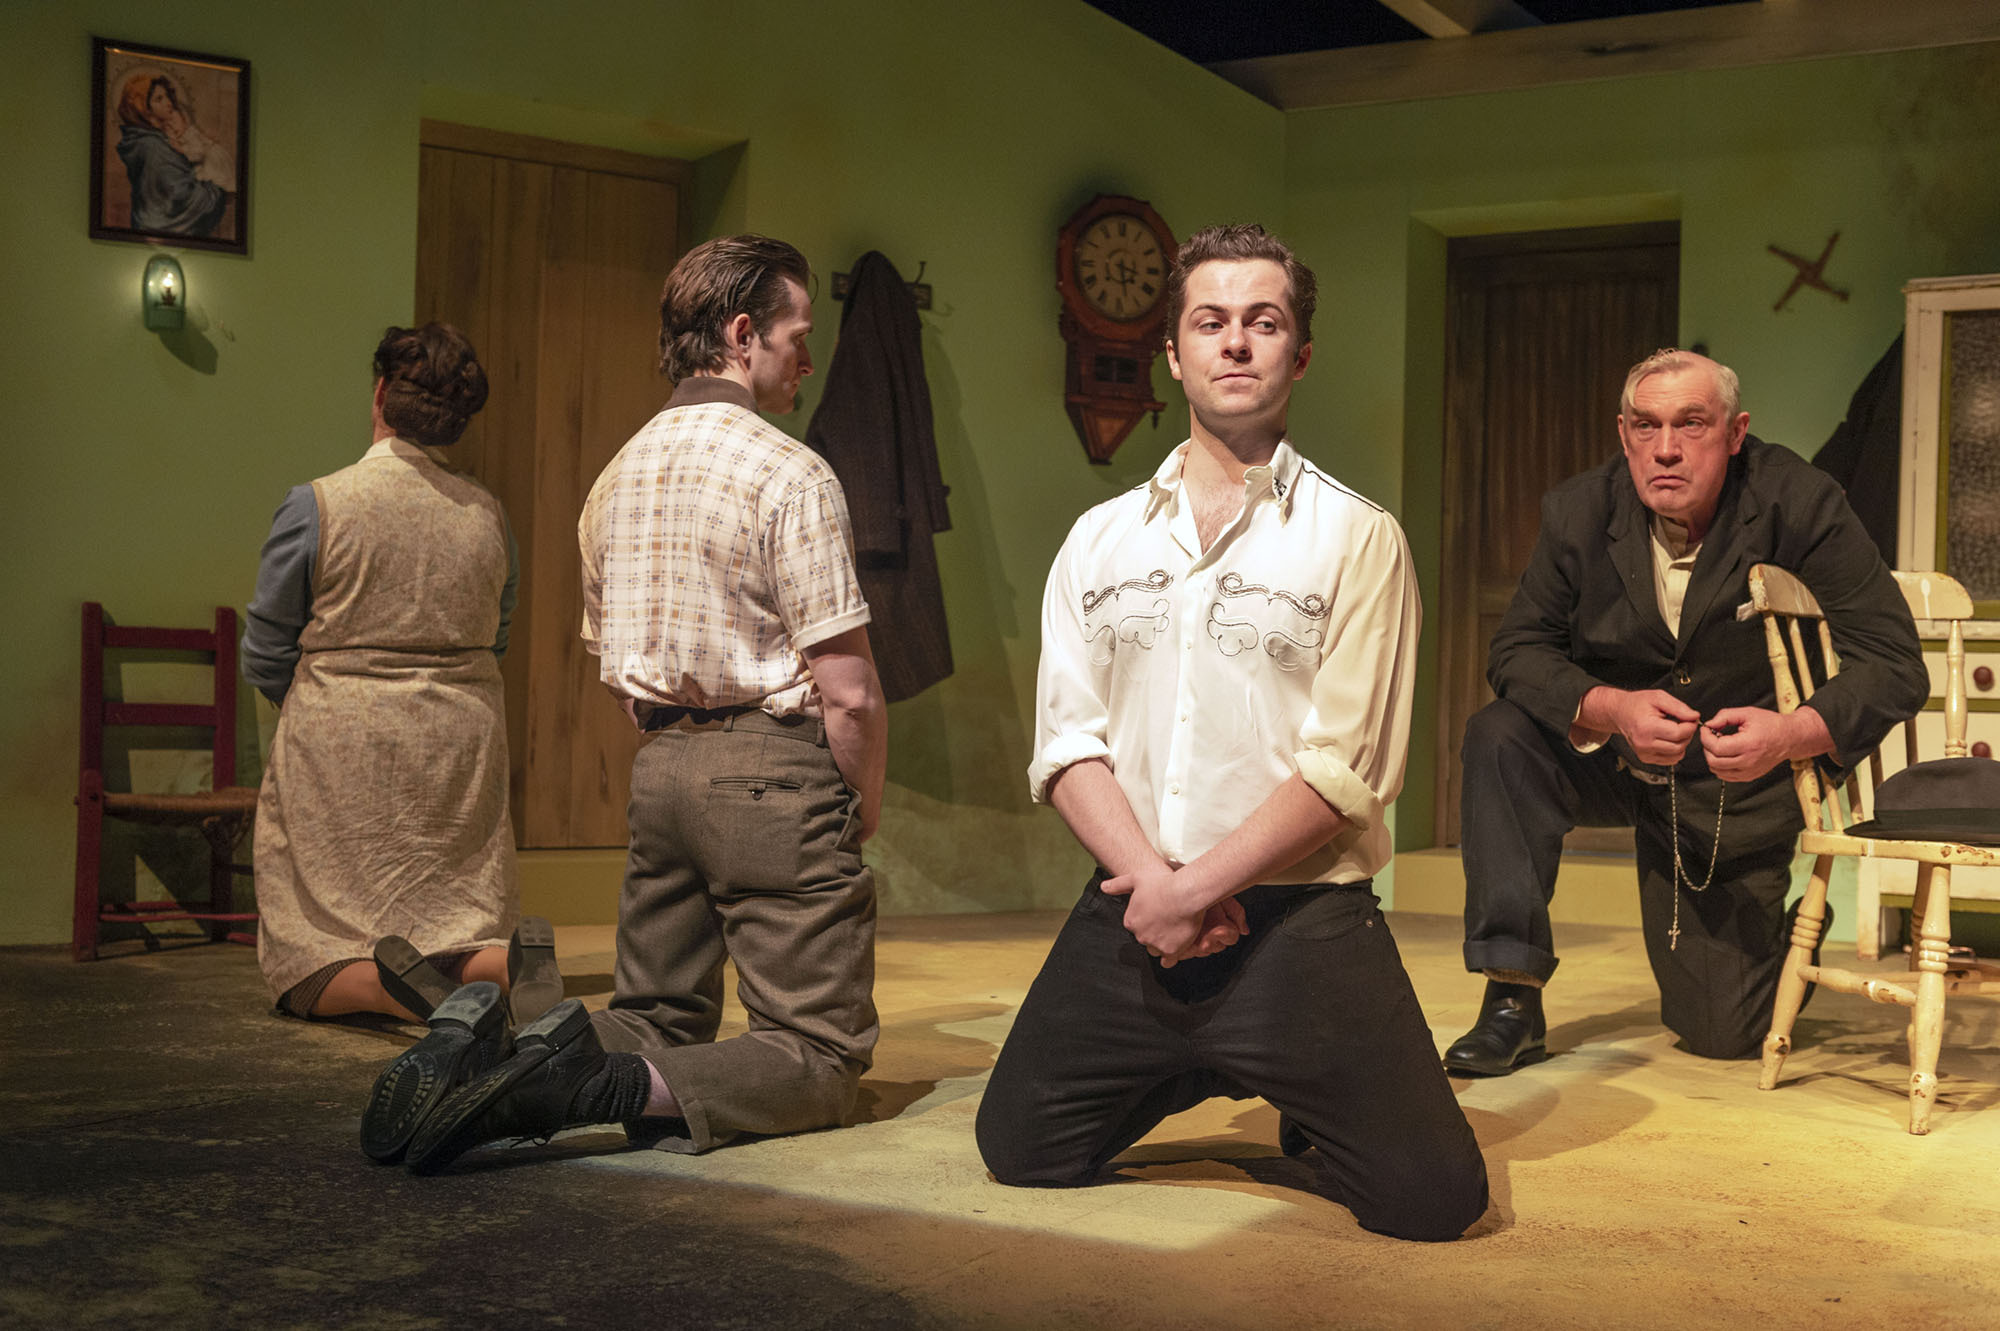 Catherine Walsh (Madge), Seamus O'Rourke (S.B.), Shane O'Regan (Gar Public), Alex Murphy (Gar Private), in Brian Friel's Philadelphia Here I Come! directed by Geoff Gould and presented by Patrick Talbot Productions at Cork Opera House, 5th to 16th October.